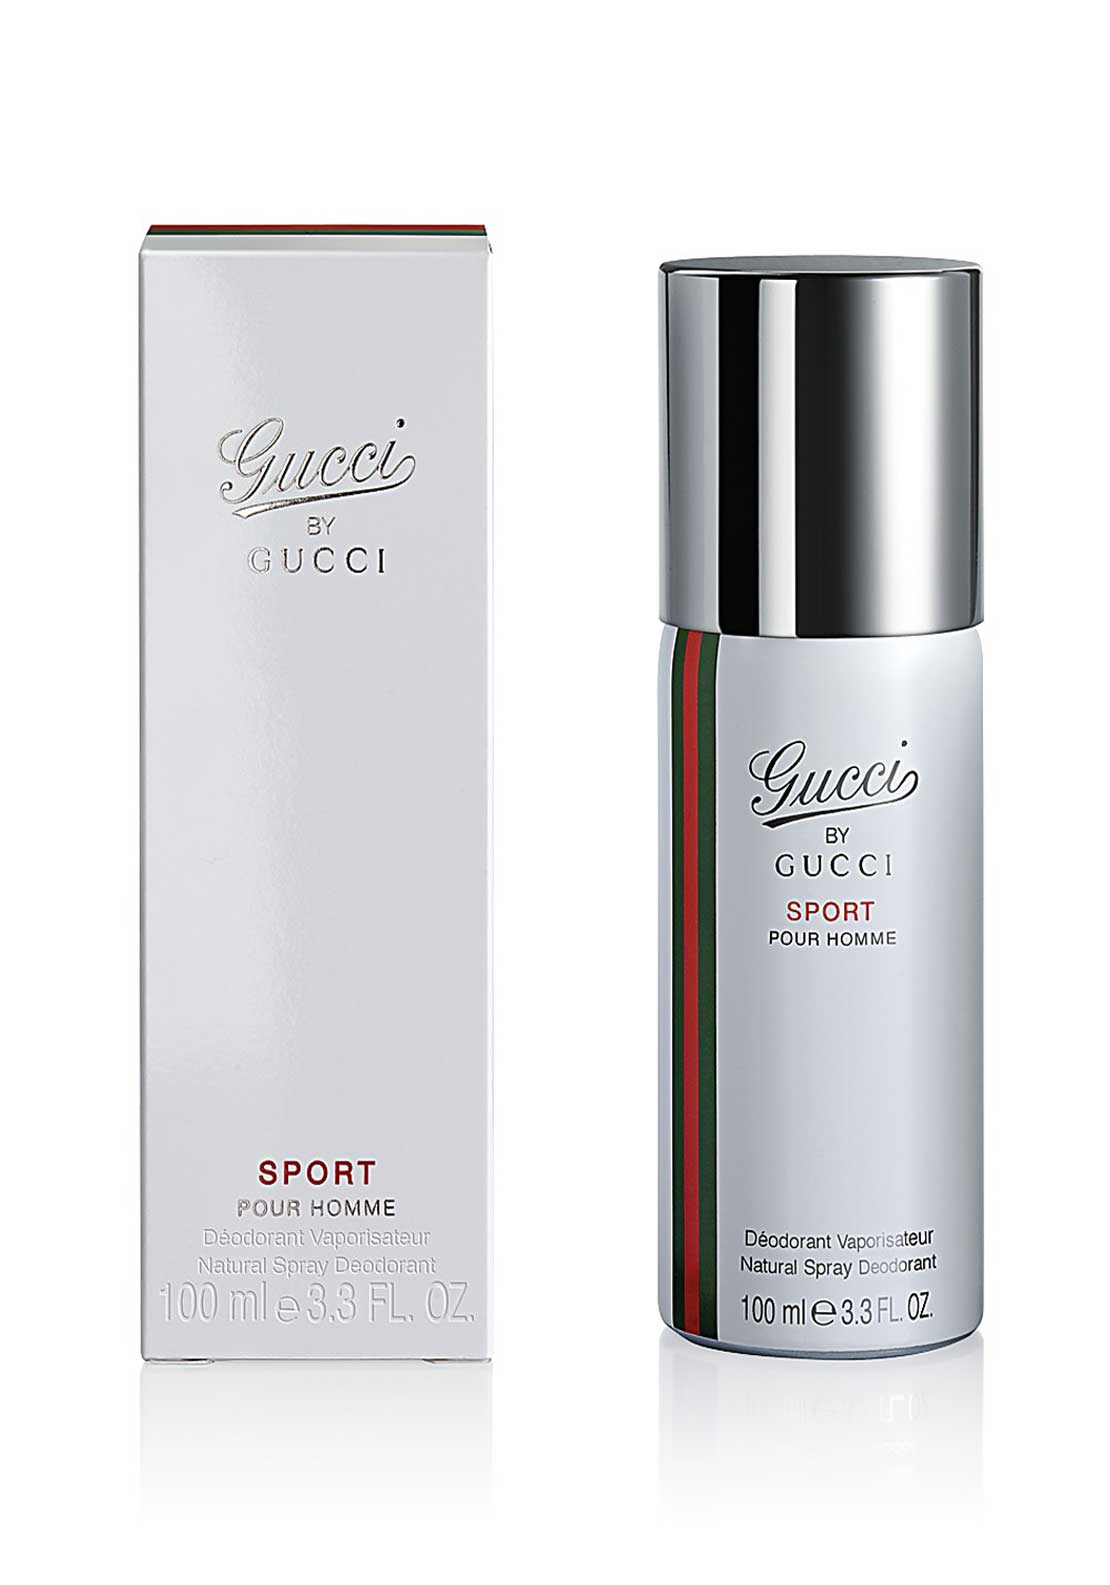 Gucci Sport Pour Homme Natural Spray Deodorant, 100ml